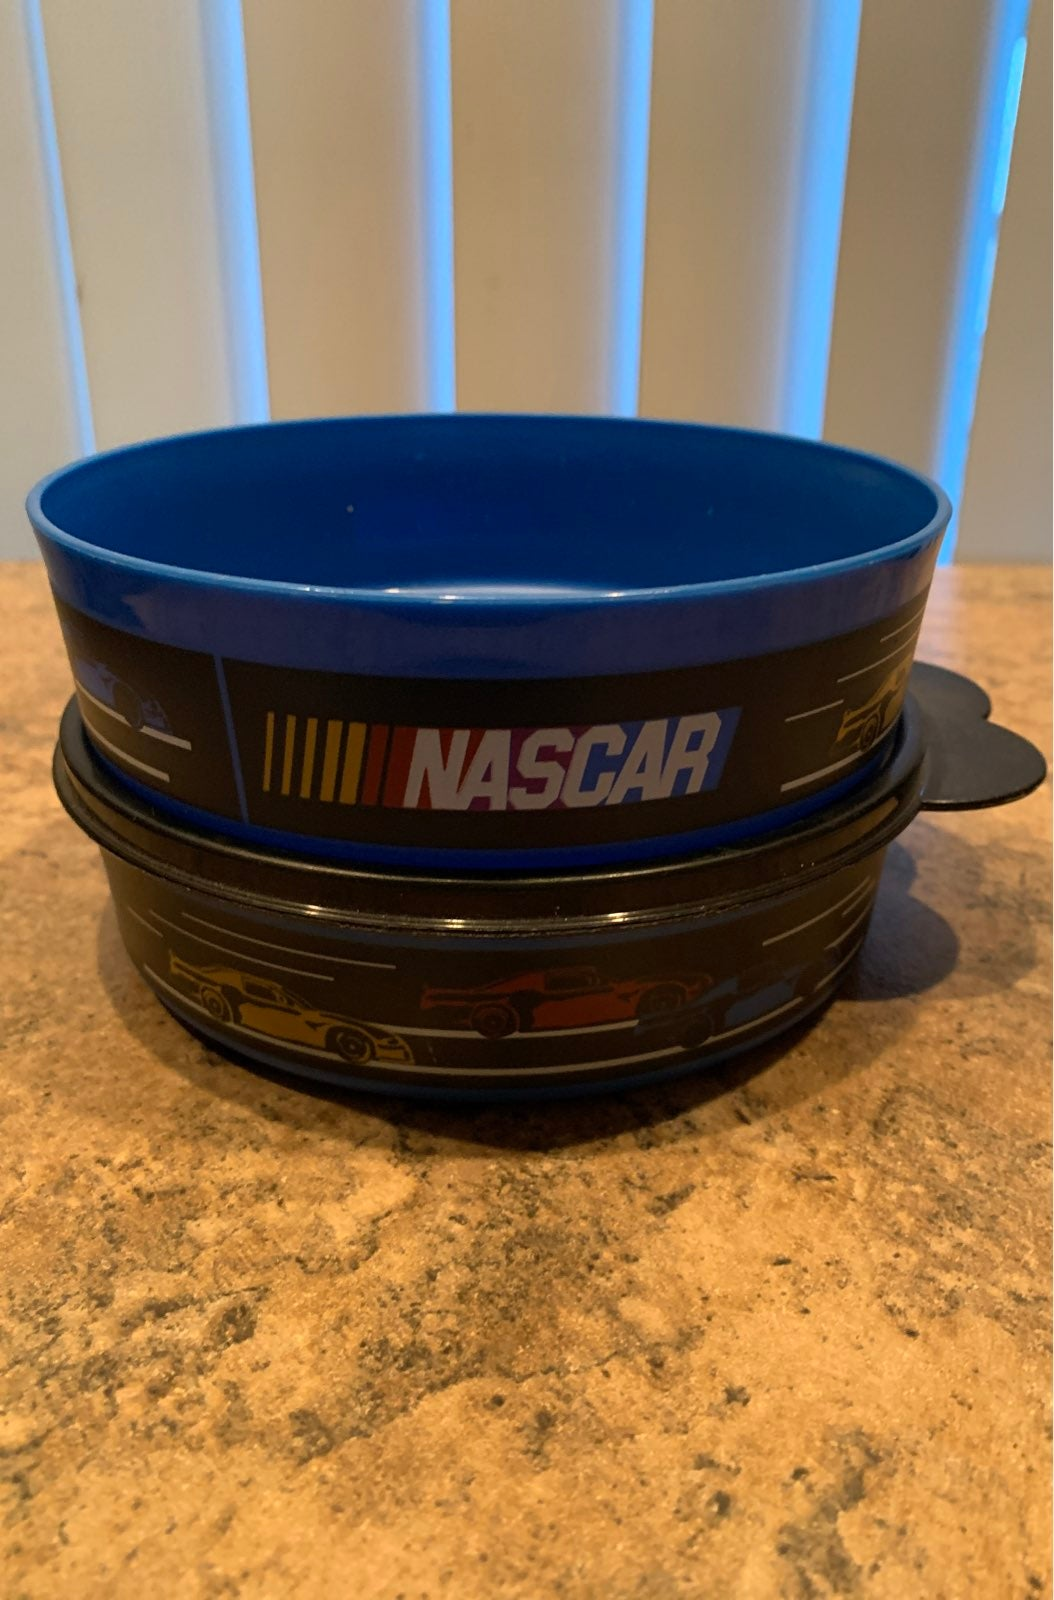 Tupperware Nascar Containers